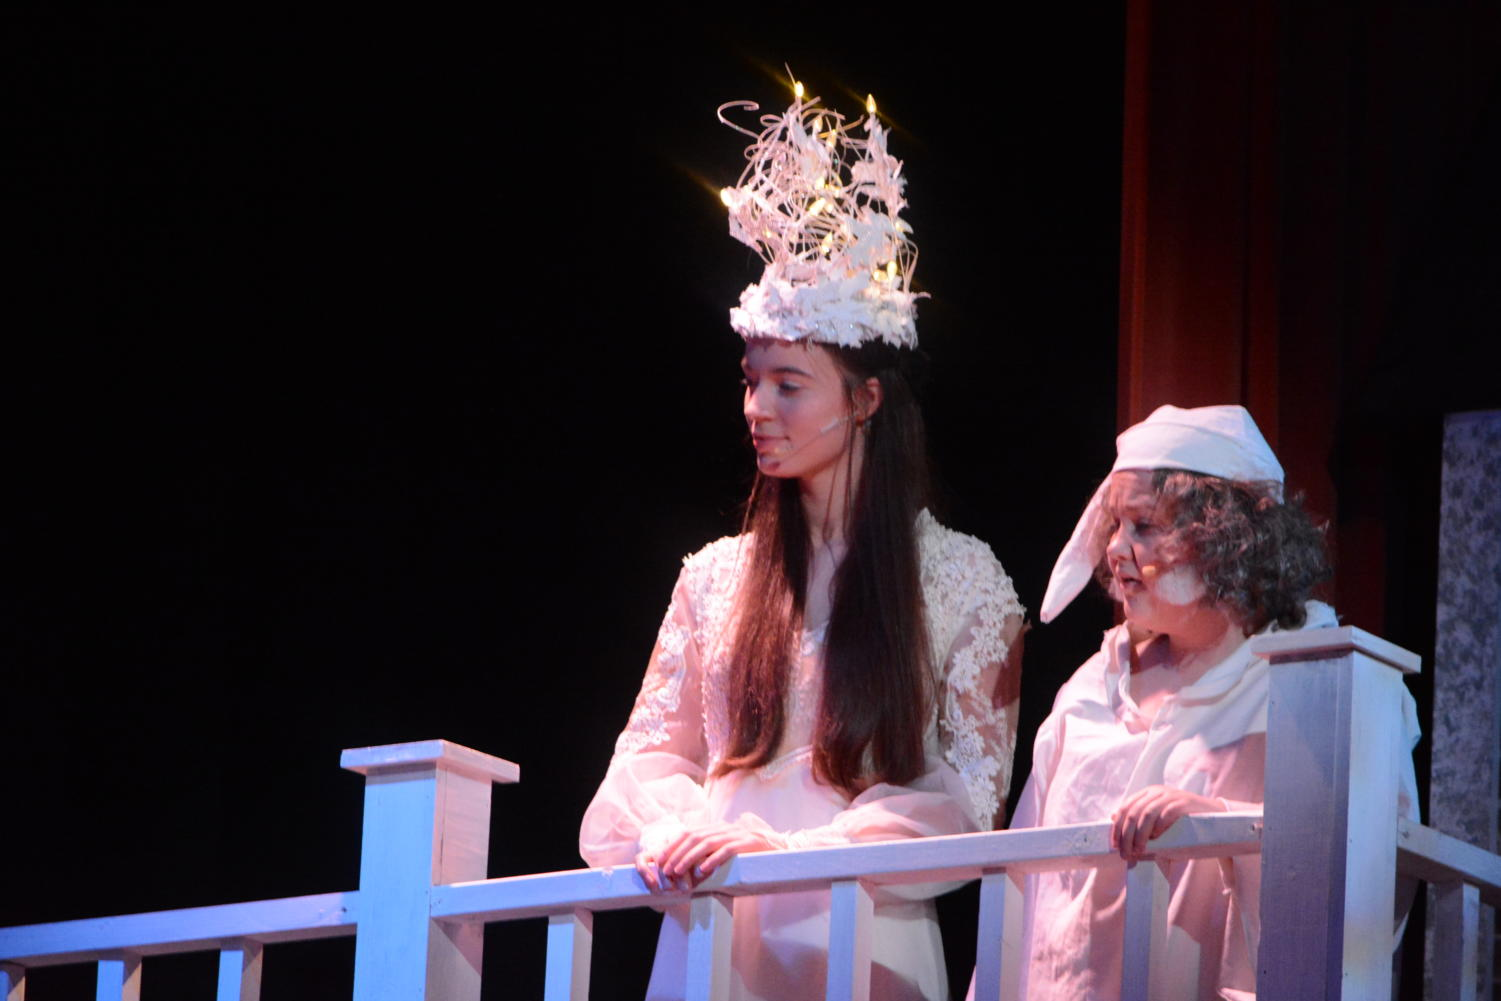 Blast from the past-- The Ghost of Christmas Past, played by junior Wiktoria Adamska (left), shows Ebenezer Scrooge, played by junior Audrey Lewis (right), a look back to the moment when young Scrooge, played by junior Evan Adams, abandons his fiancé, Belle, played by junior Jessie Clark. Applied arts teacher Jim Corrigan's classes built The Ghost of Christmas Past's headdress.